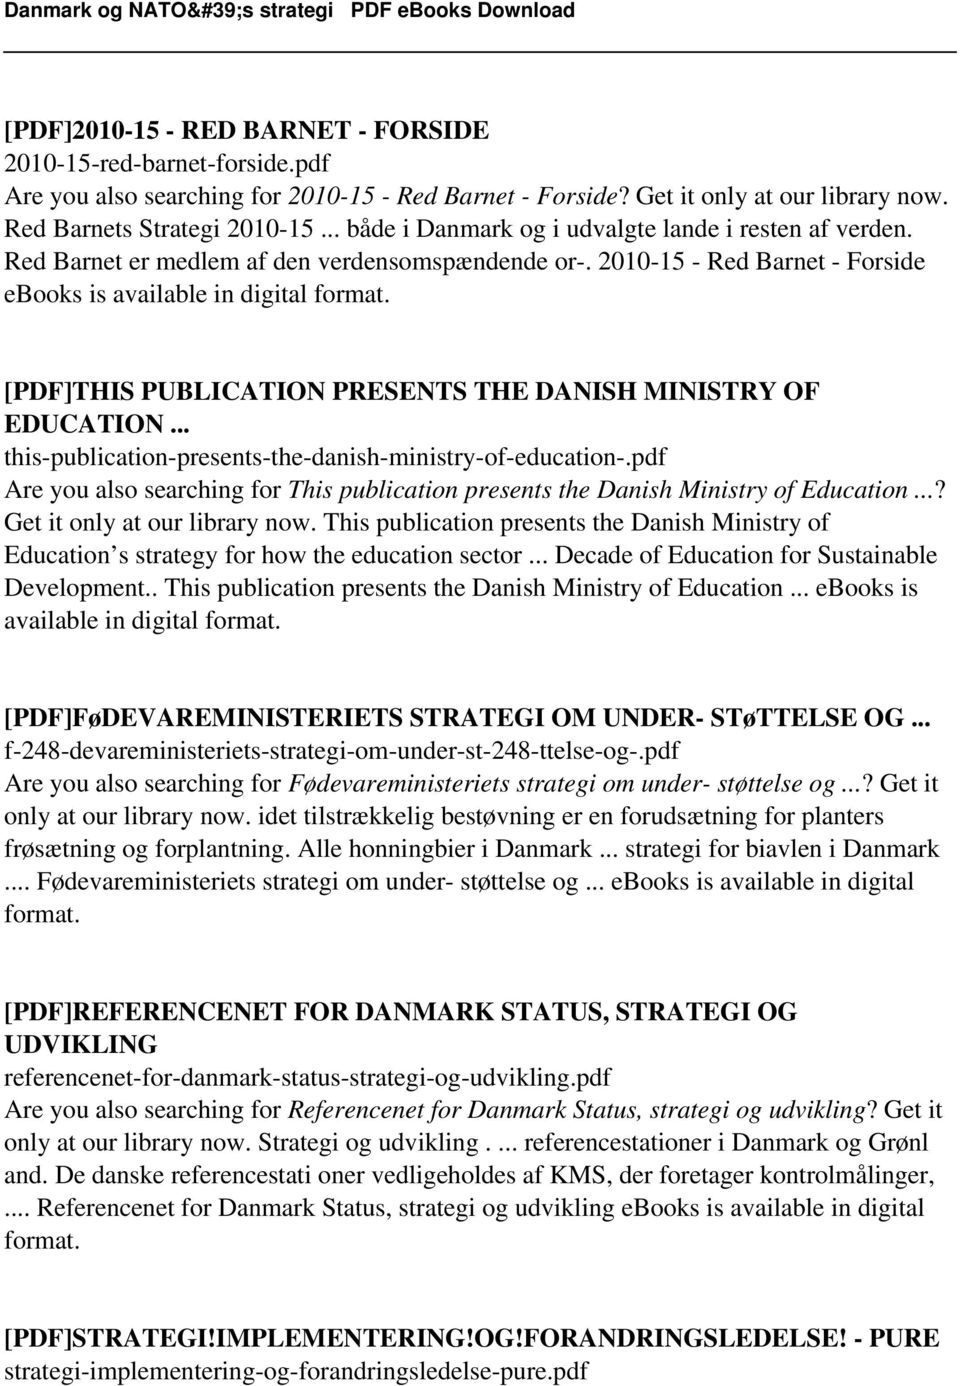 2010-15 - Red Barnet - Forside ebooks is [PDF]THIS PUBLICATION PRESENTS THE DANISH MINISTRY OF EDUCATION... this-publication-presents-the-danish-ministry-of-education-.